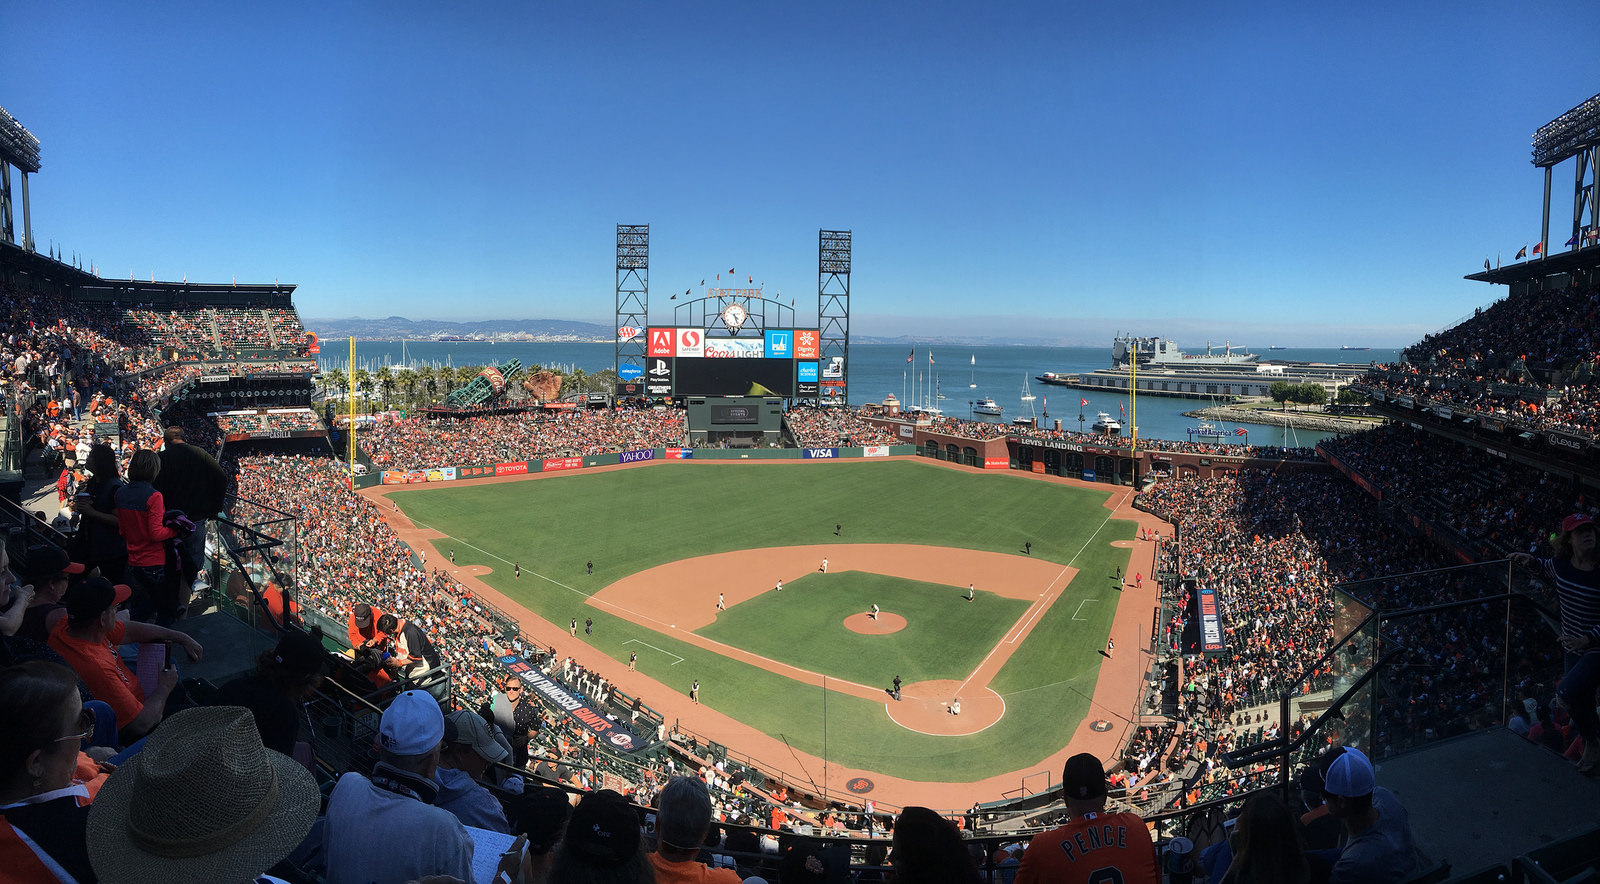 Oracle Park Park, home of the San Francisco Giants